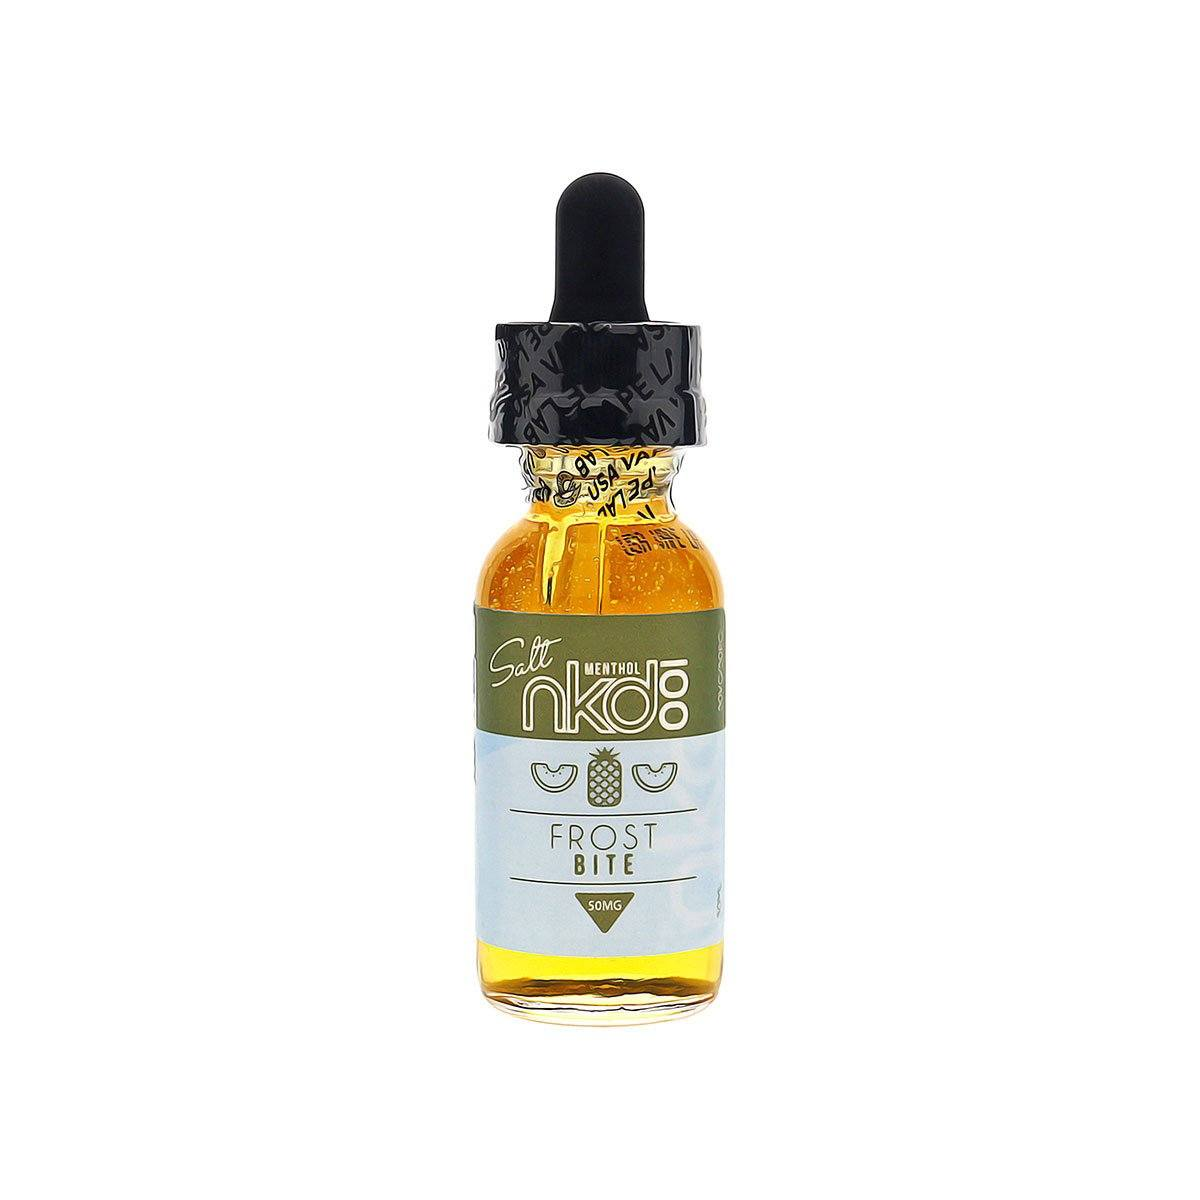 Nicotine Salts - Frost Bite E-Liquid By Naked 100 Salt